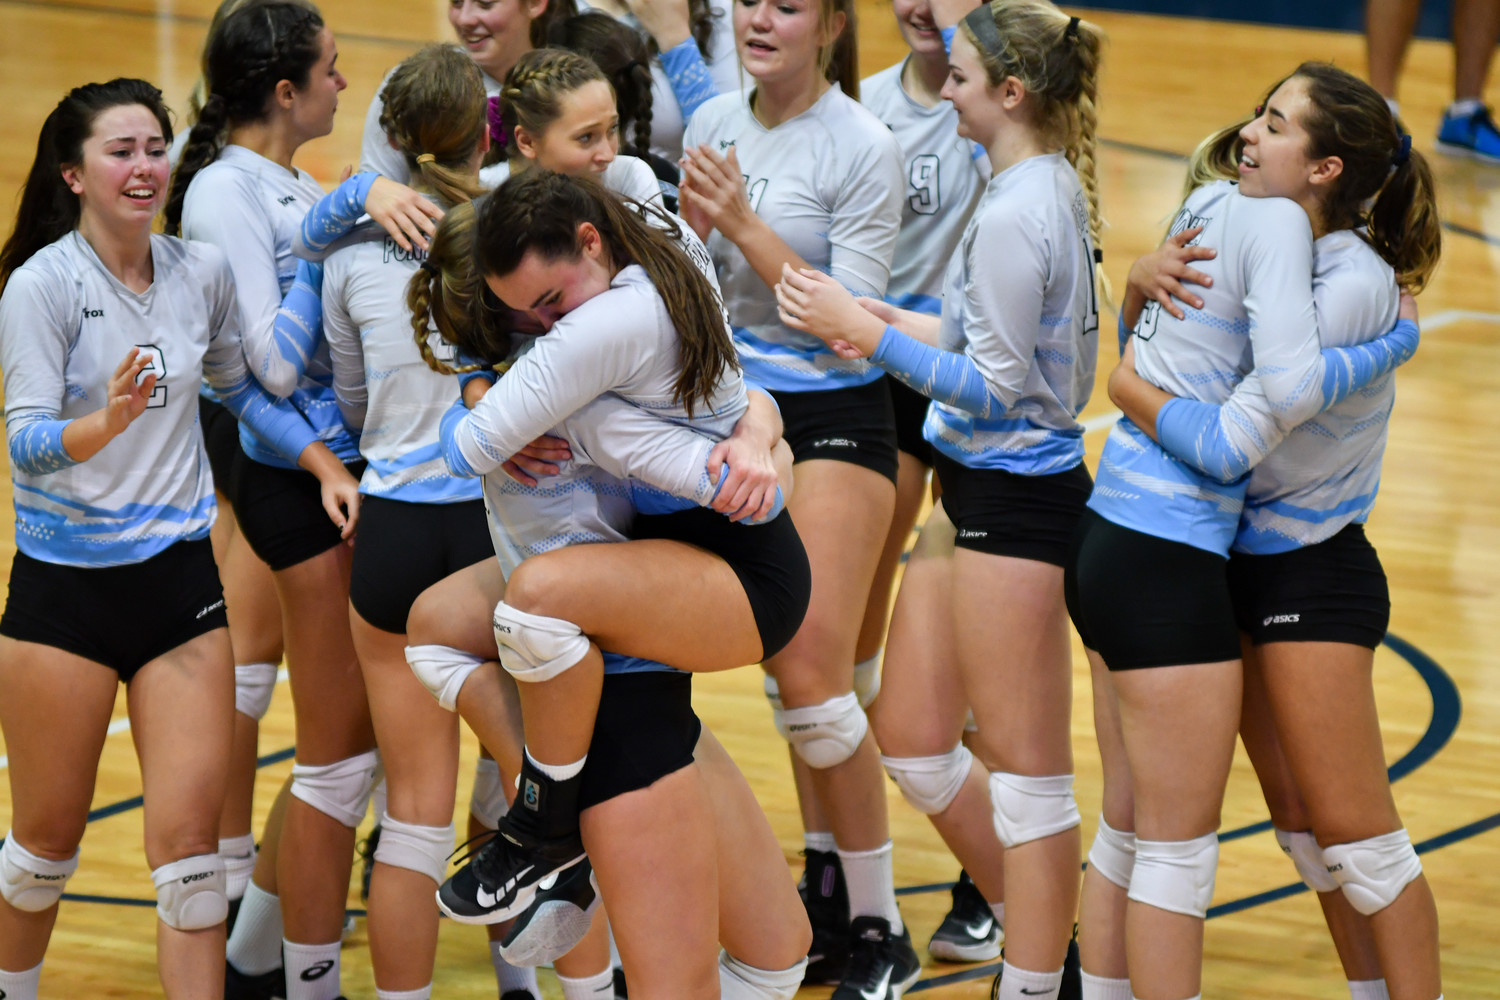 Ponte Vedra's girls volleyball team celebrates winning the Class 6A state title game against Bishop Moore Nov. 18.